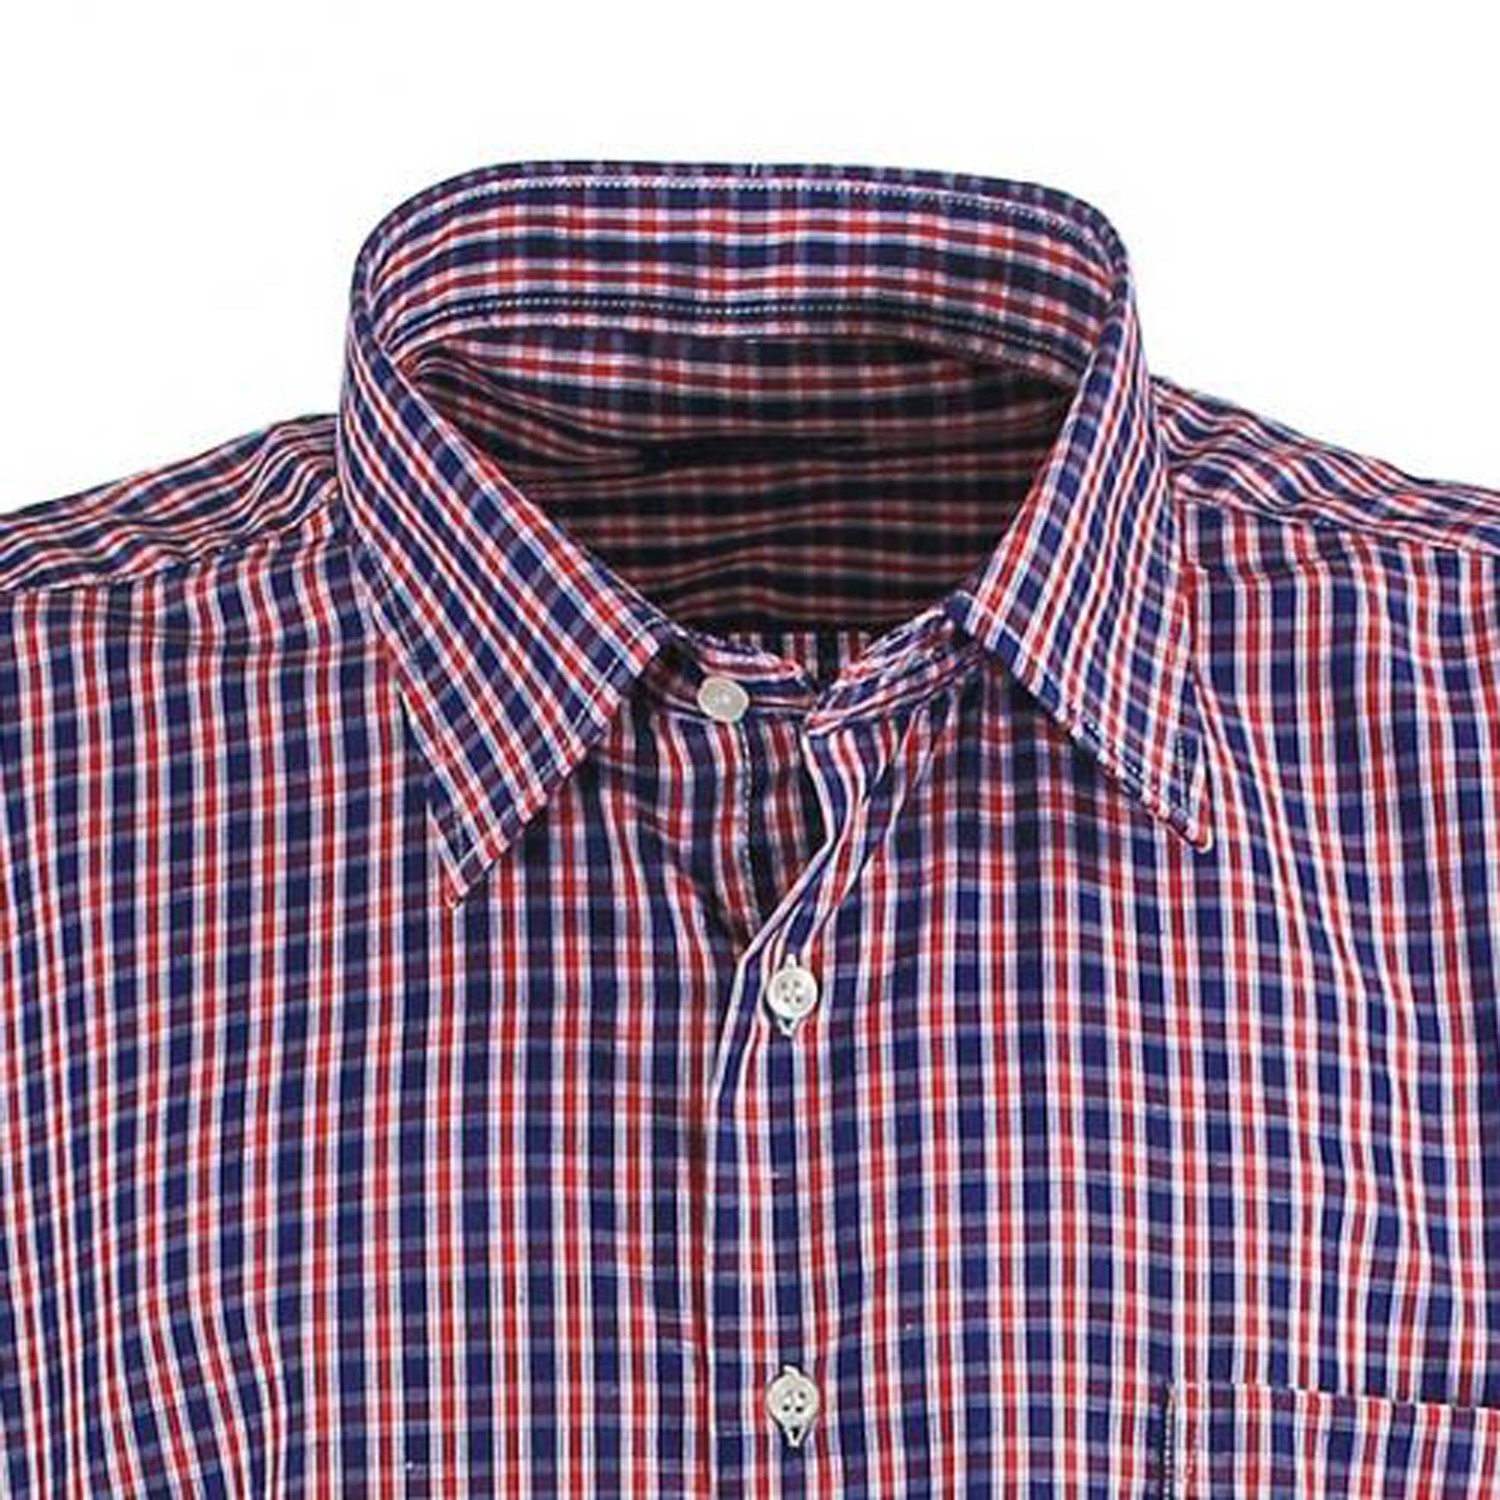 Detail Image to Checked shirt red/blue/white in king sizes by Lavecchia up to 7XL